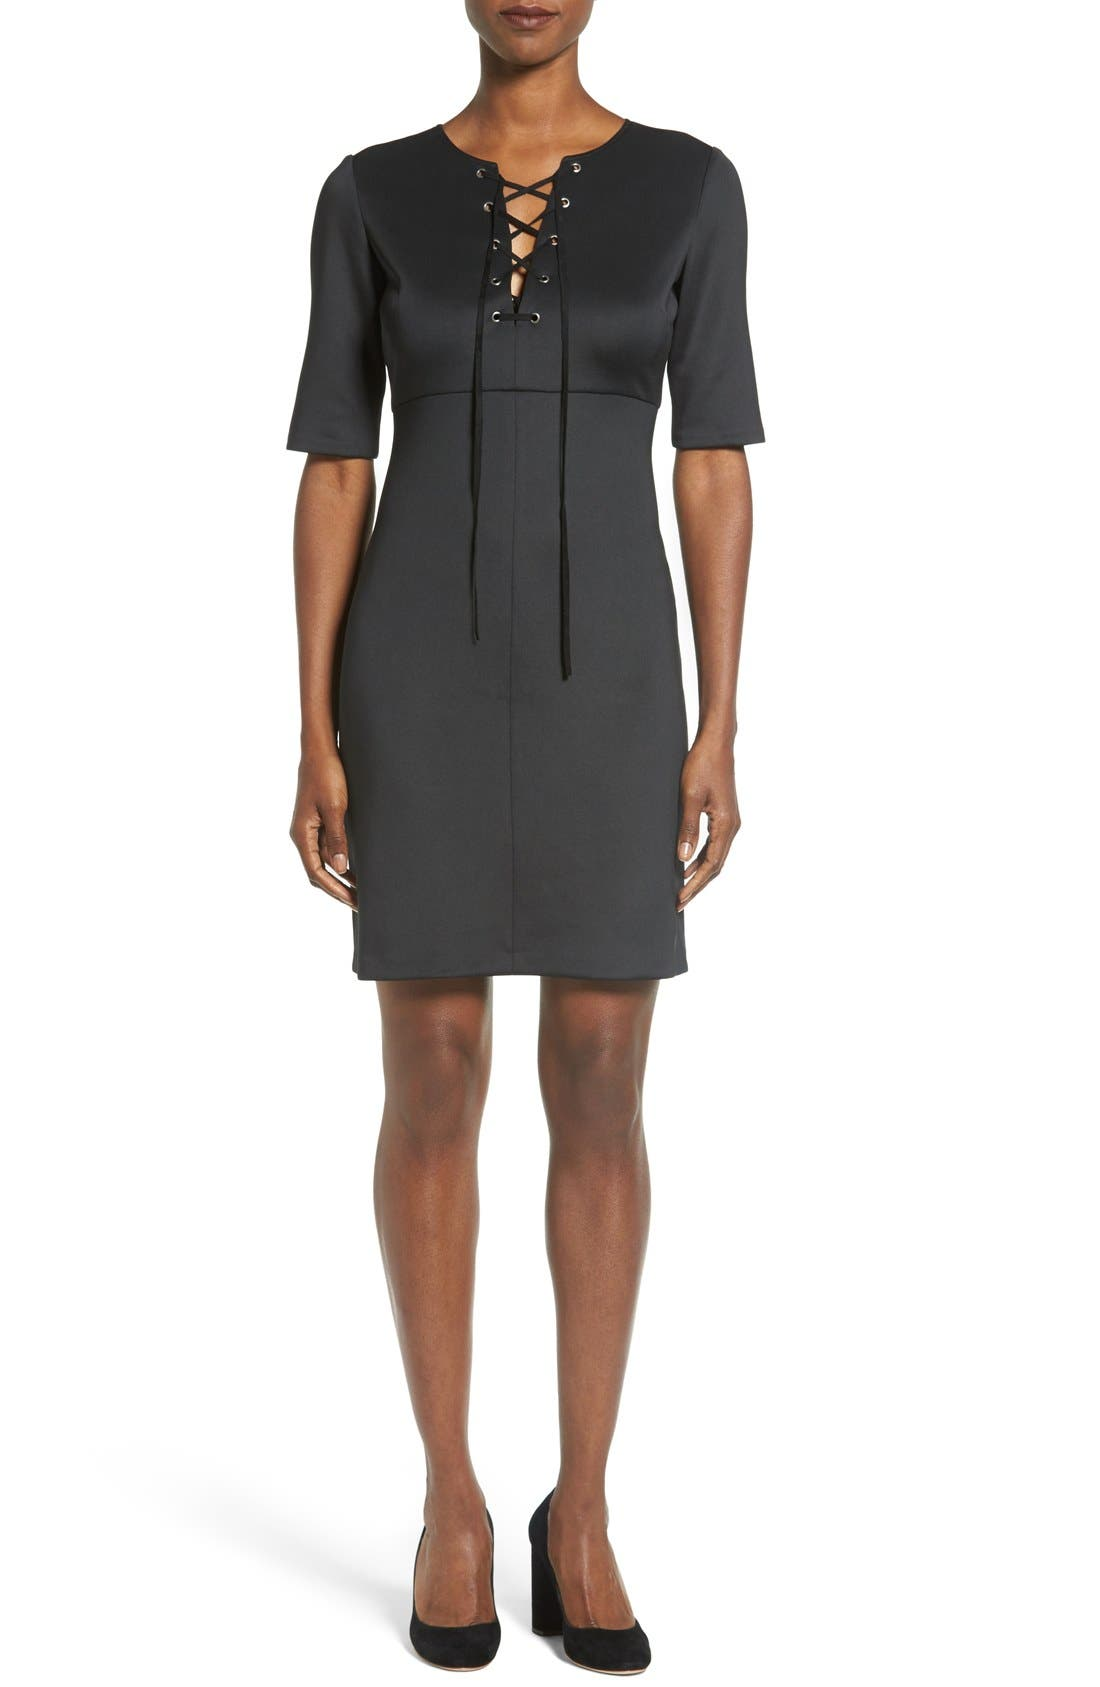 CATHERINE CATHERINE MALANDRINO 'Shaw' Lace-Up Sheath Dress